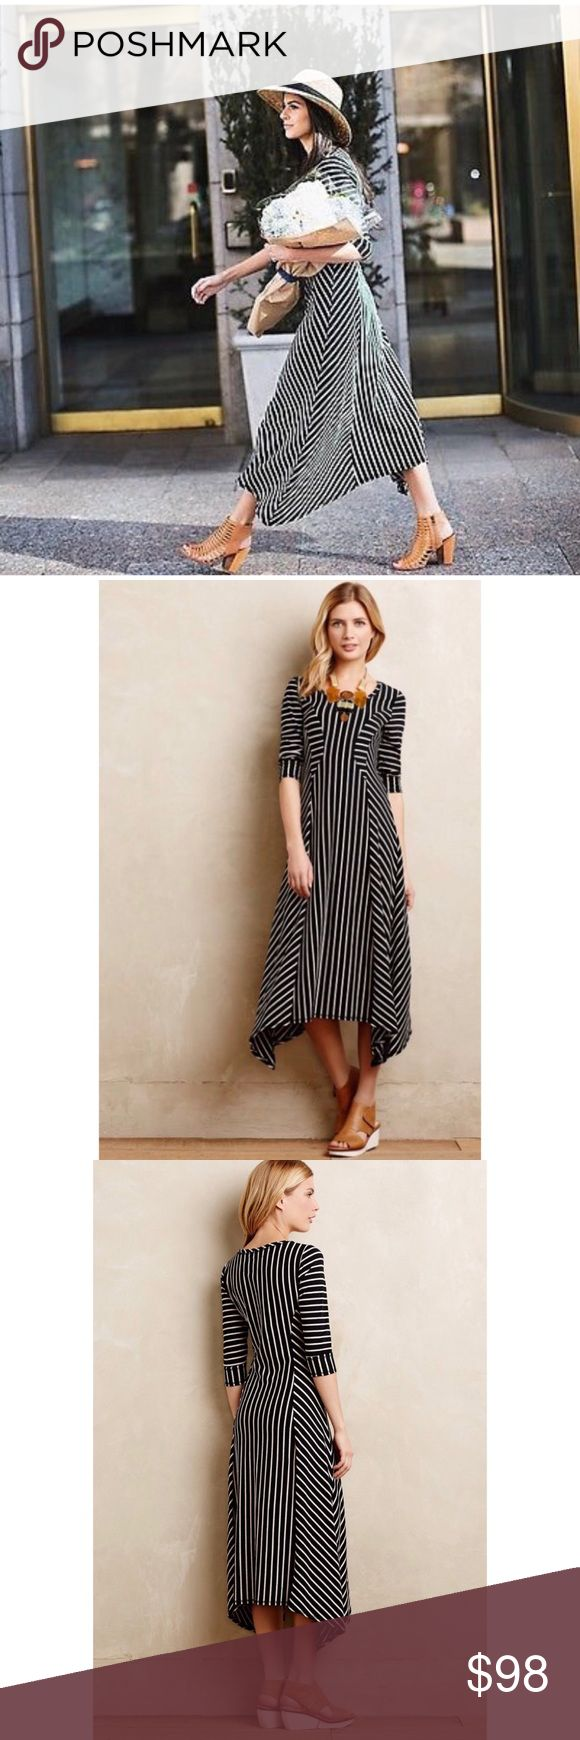 🔥SALE•Anthropologie B&W striped dress Anthropologie Saturday Sunday striped black and white dress. Classic look for any occasion! Dress it up or down. Anthropologie Dresses Maxi